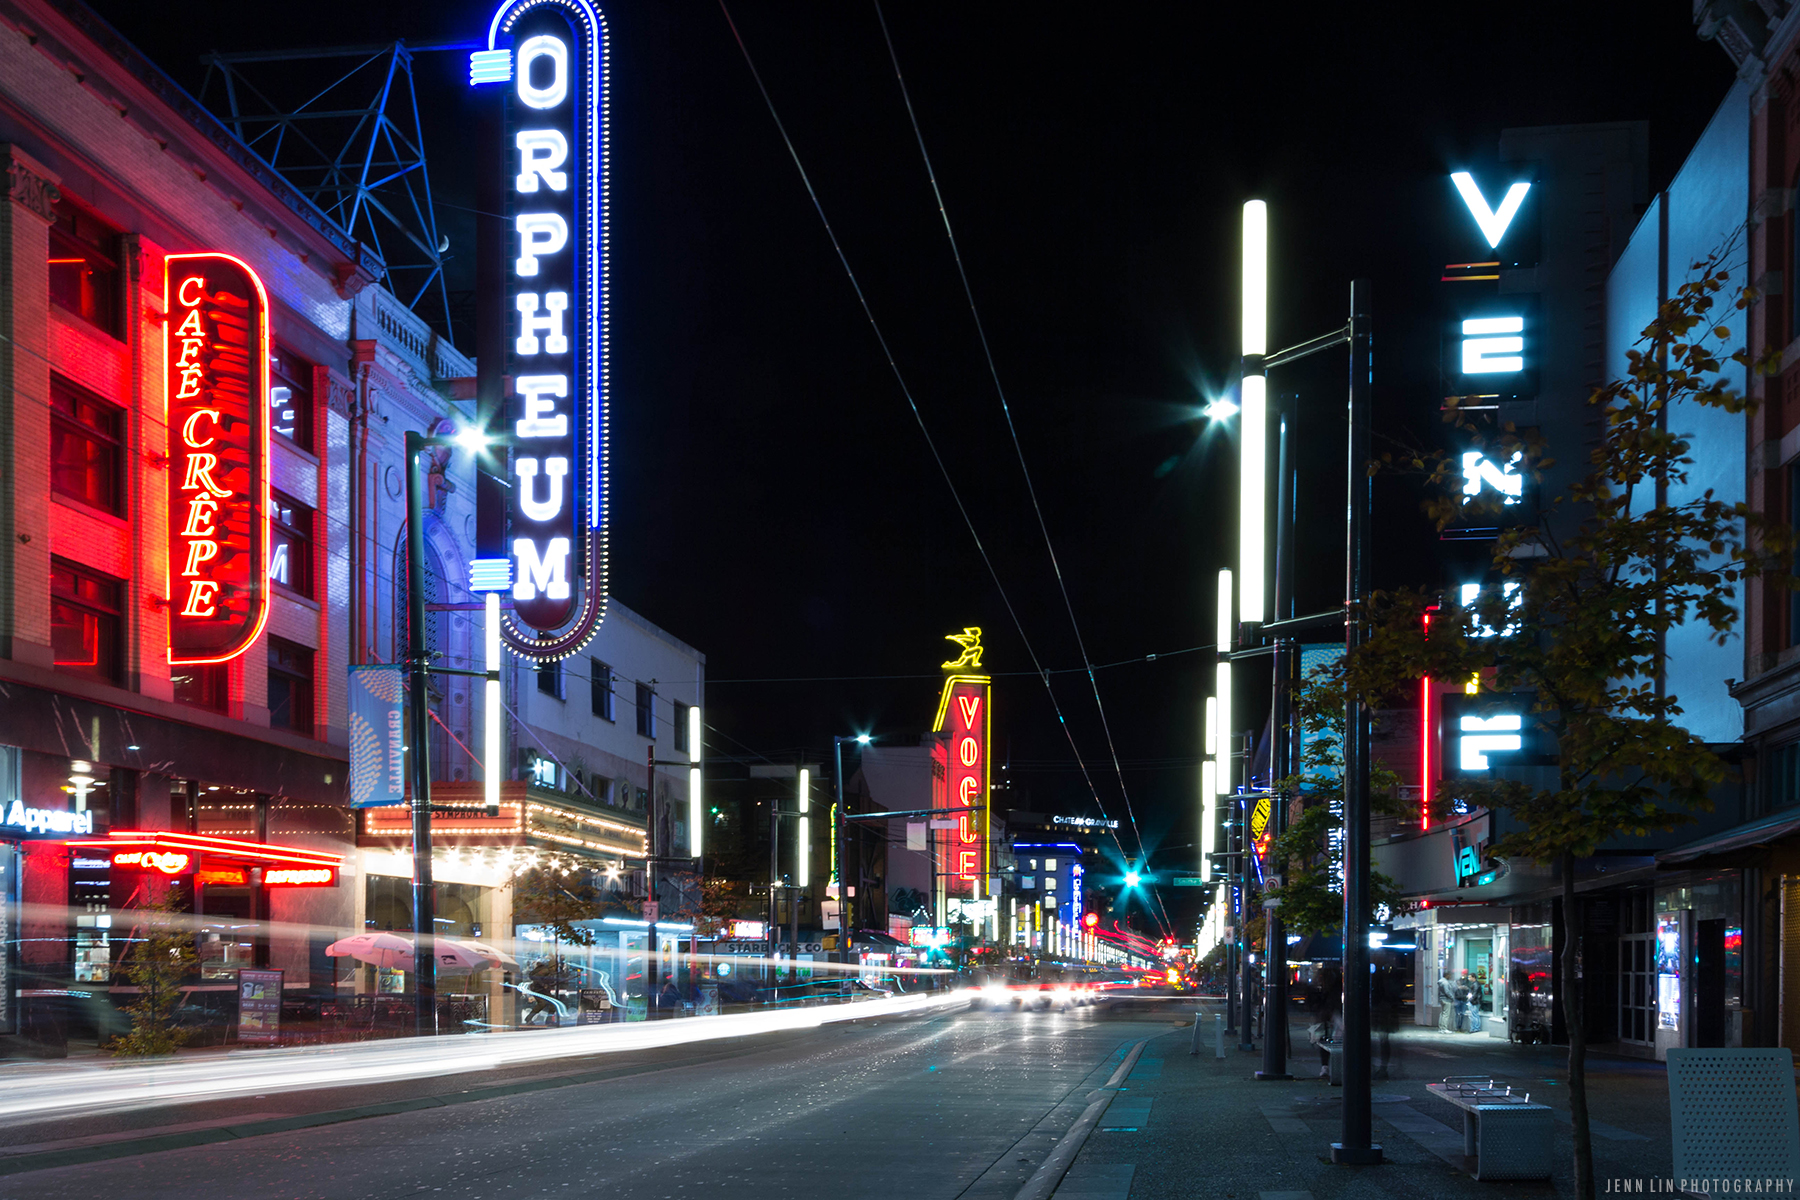 On Granville Street in Vancouver, BC